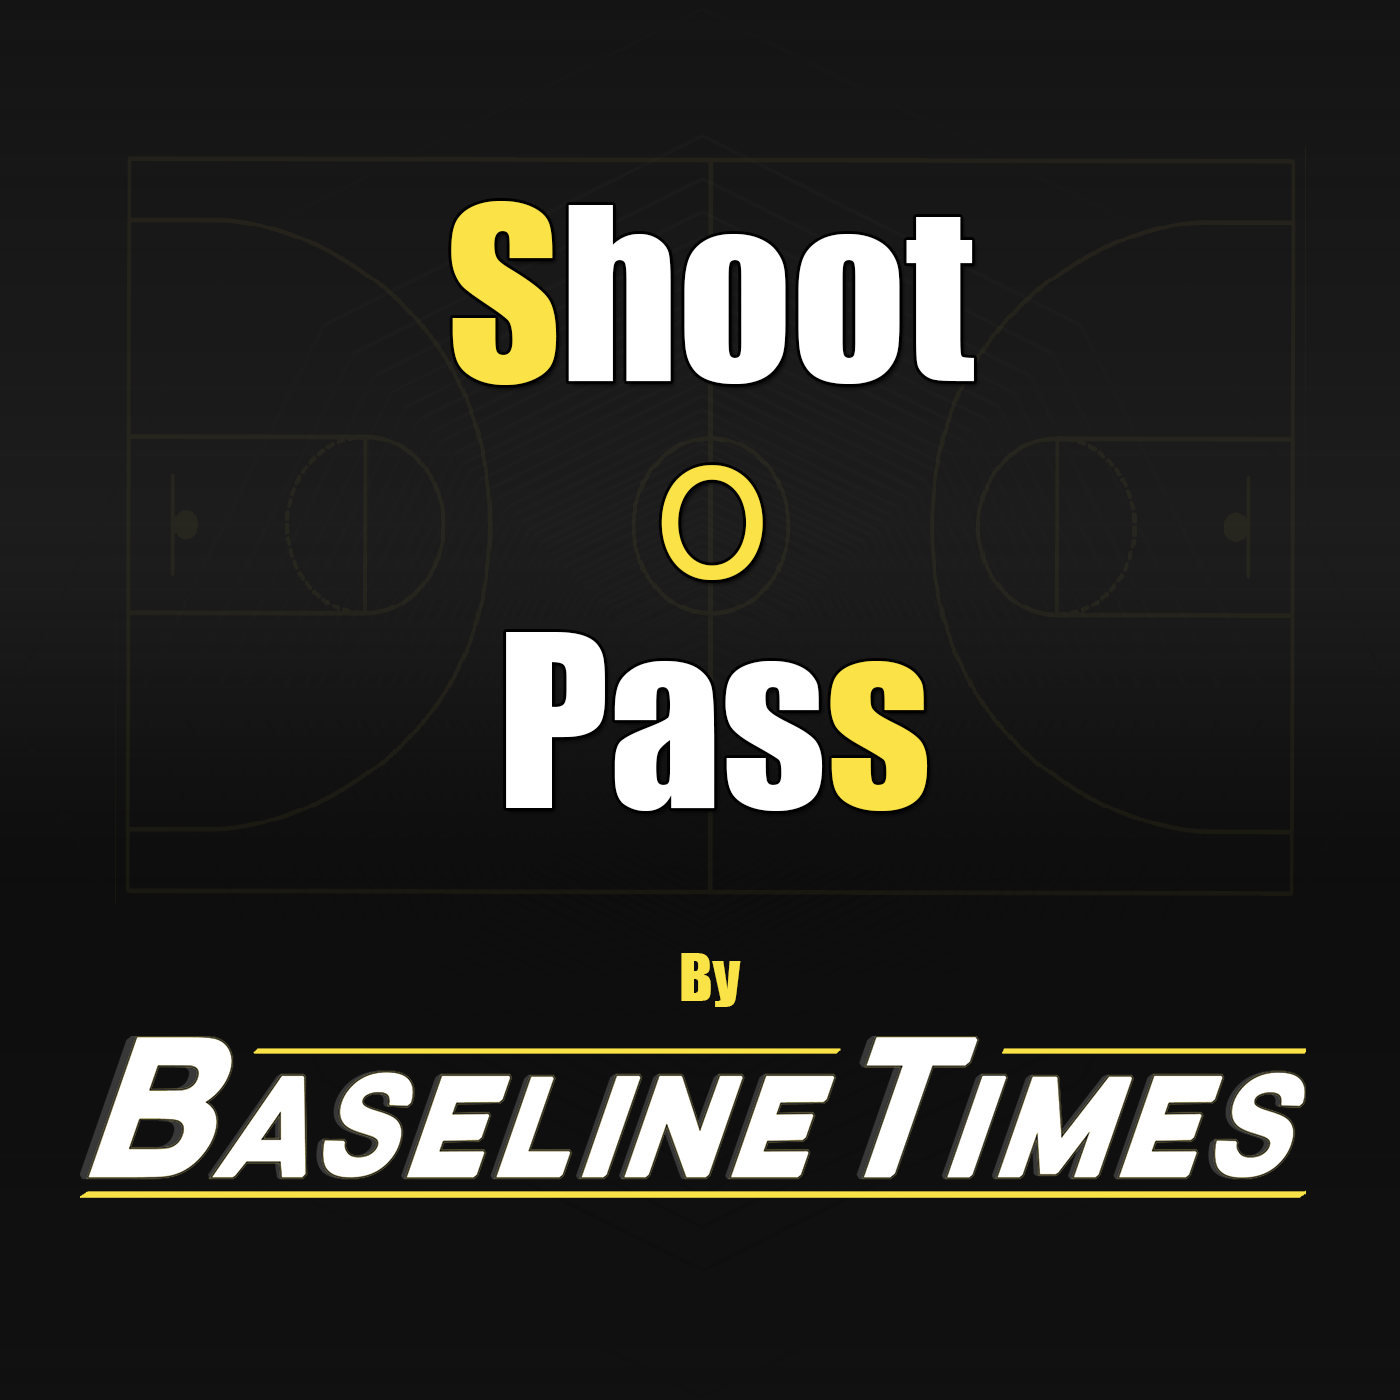 Shoot or Pass Podcast - Episode 7: 2018 NBA All-Star Recap & Lebron's Winning Weekend - Chevall and DeMario are joined by a new Baseline Times Media member! Shannon joins the crew as a female representation for the NBA side at Baseline Times. The trio review the NBA All-Star weekend in LA, why LeBron had a great weekend, and give their thoughts for the second half of the season. Tune-in now!